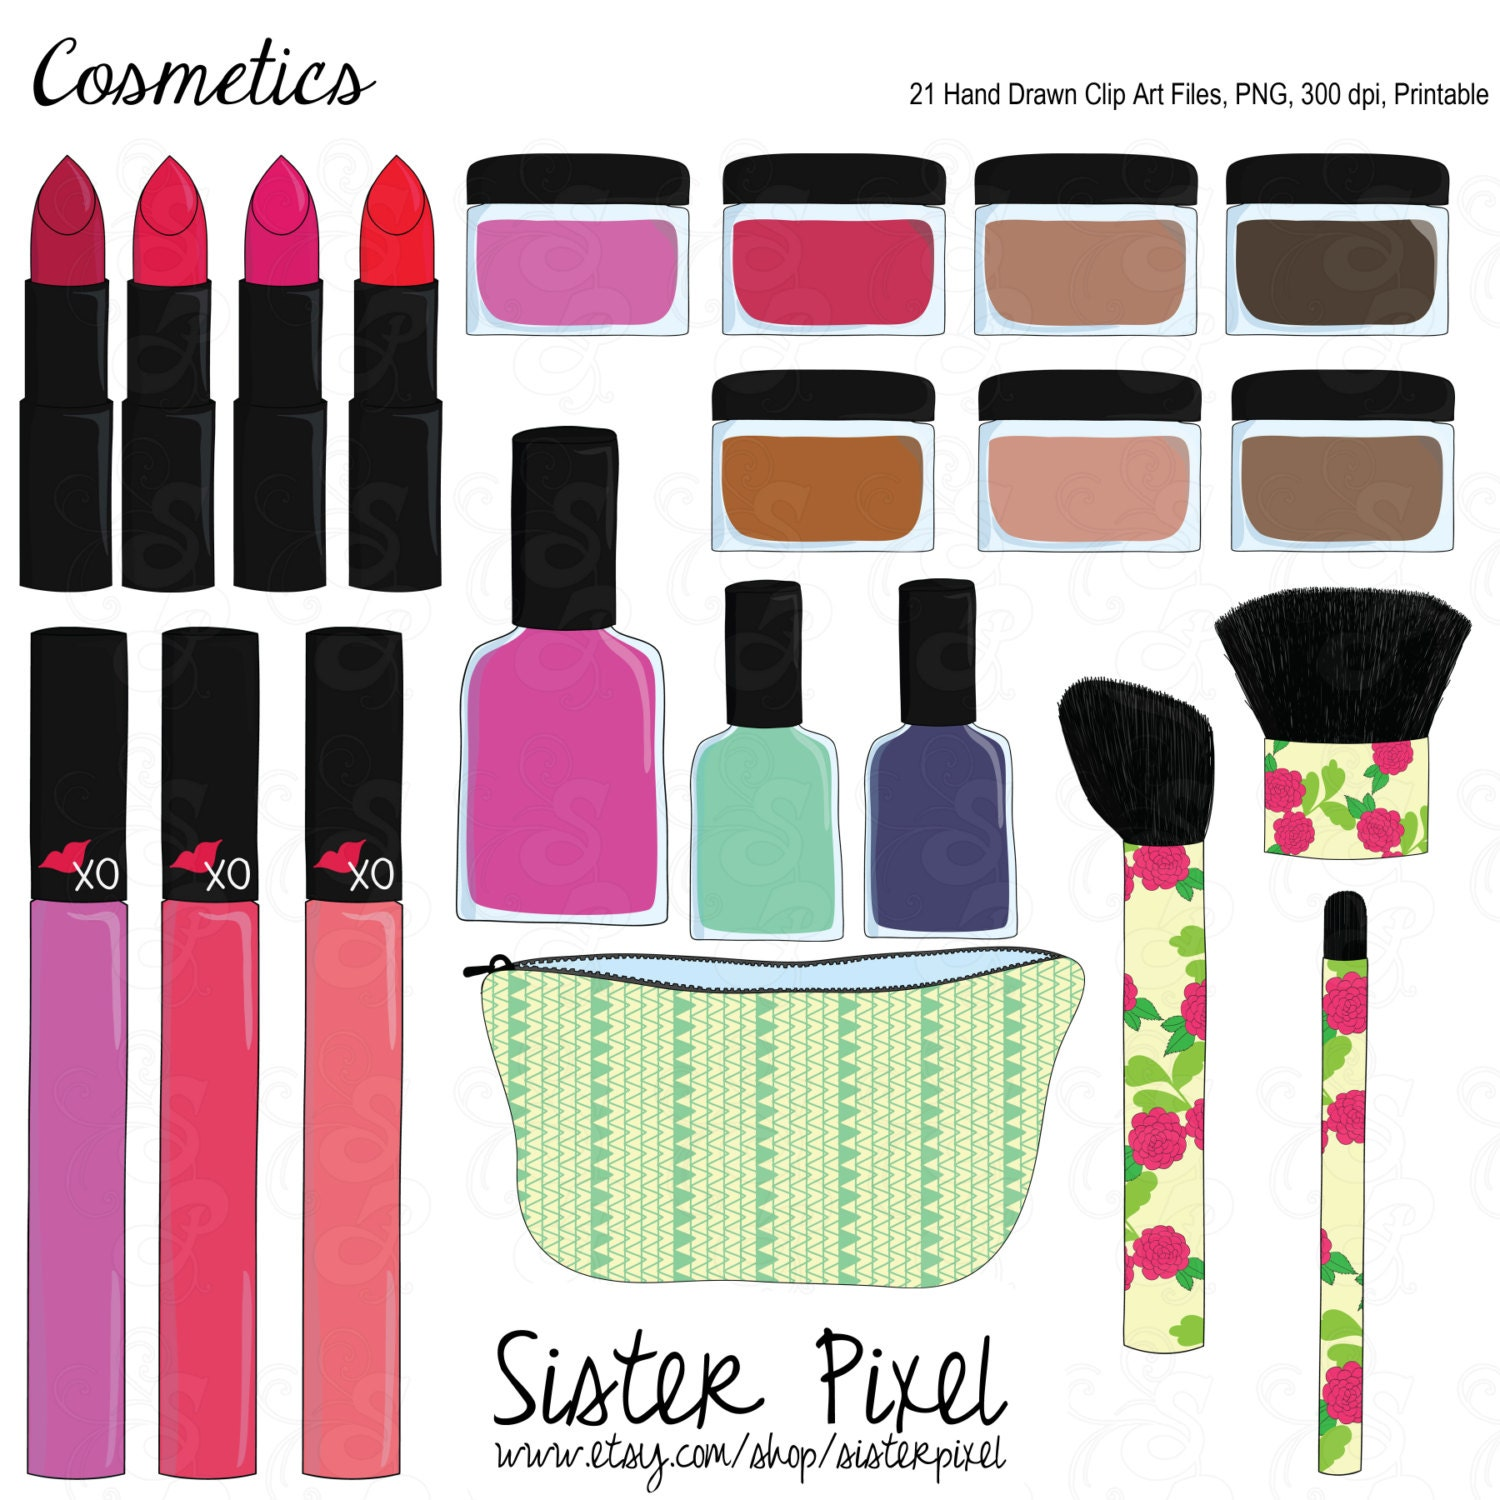 Make Clip Art Hand Drawn Cosmetic Files